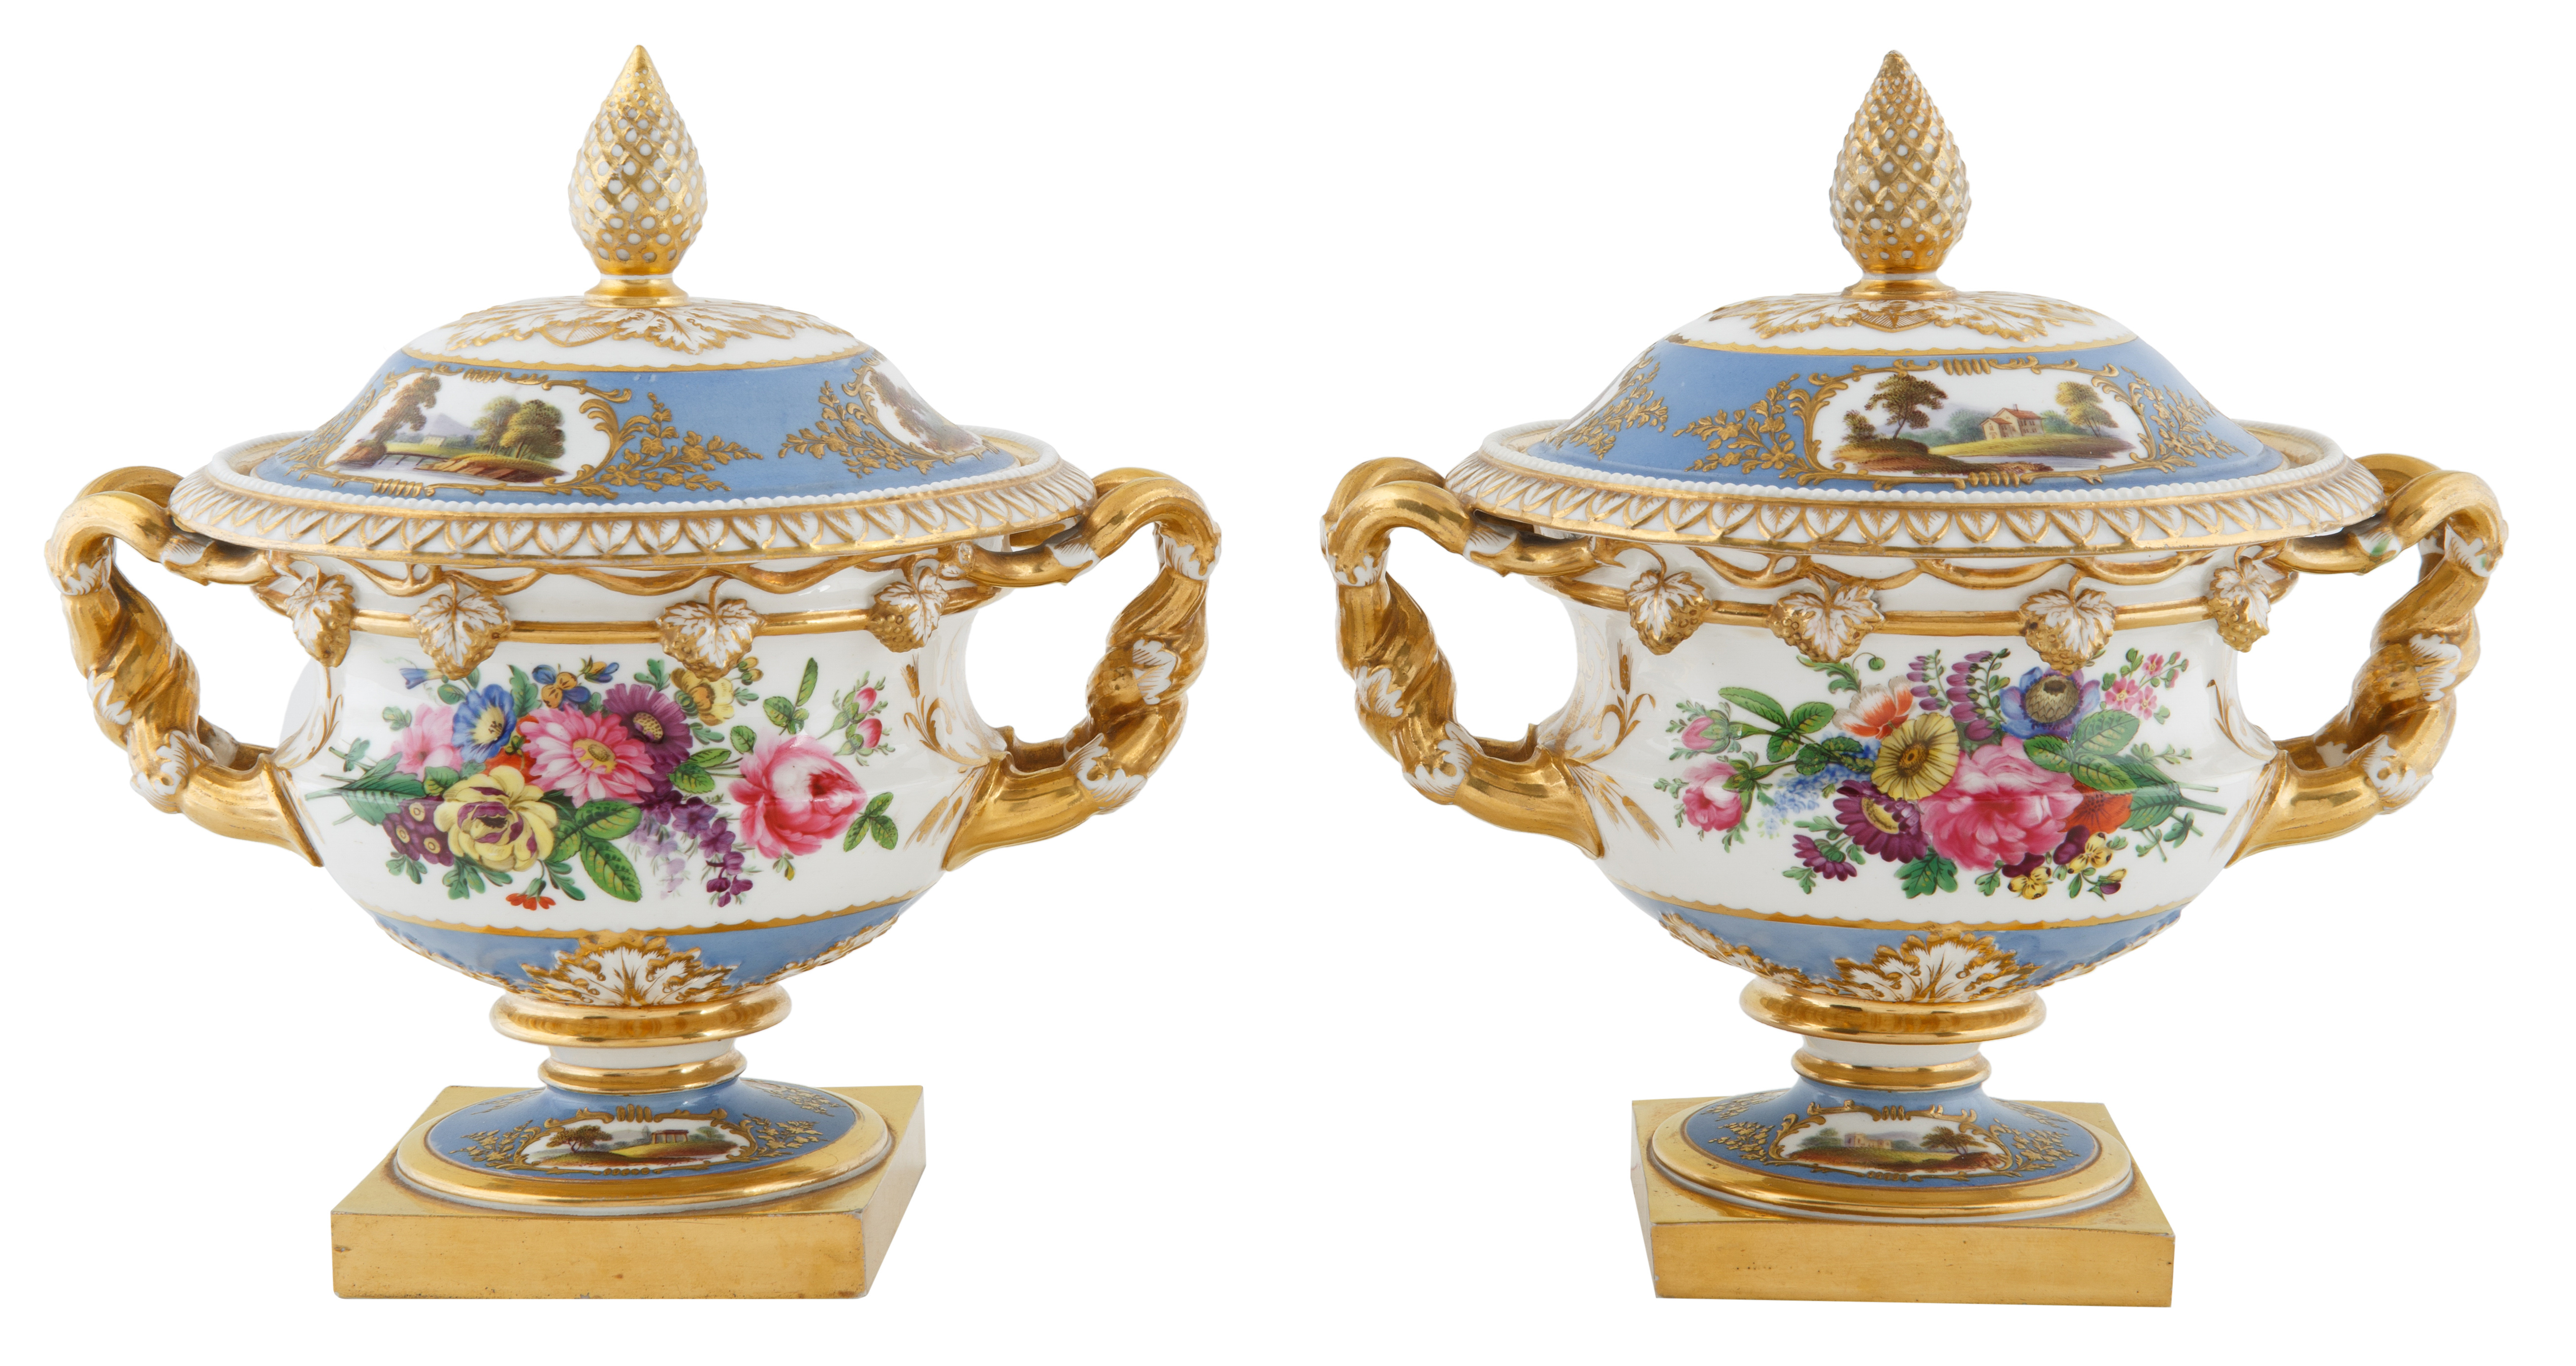 CONTINENTAL PORCELAIN COVERED URNS - Image 2 of 3